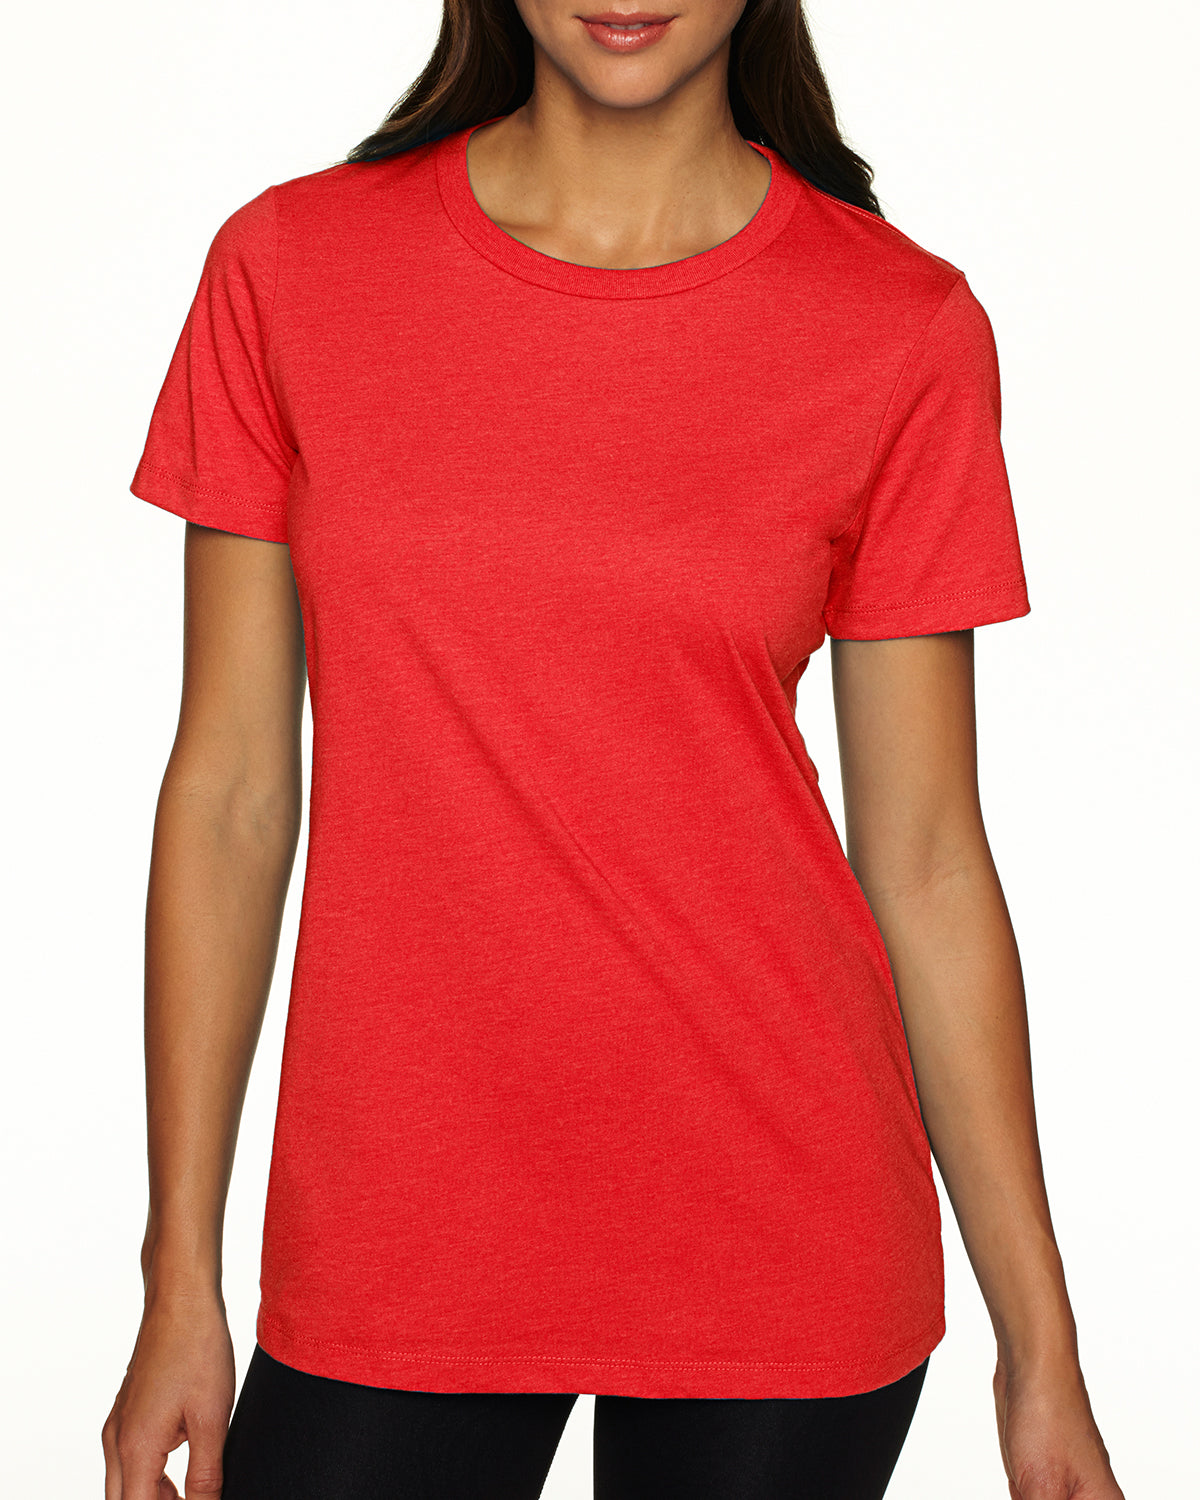 Soft Cotton Ladies T-Shirt